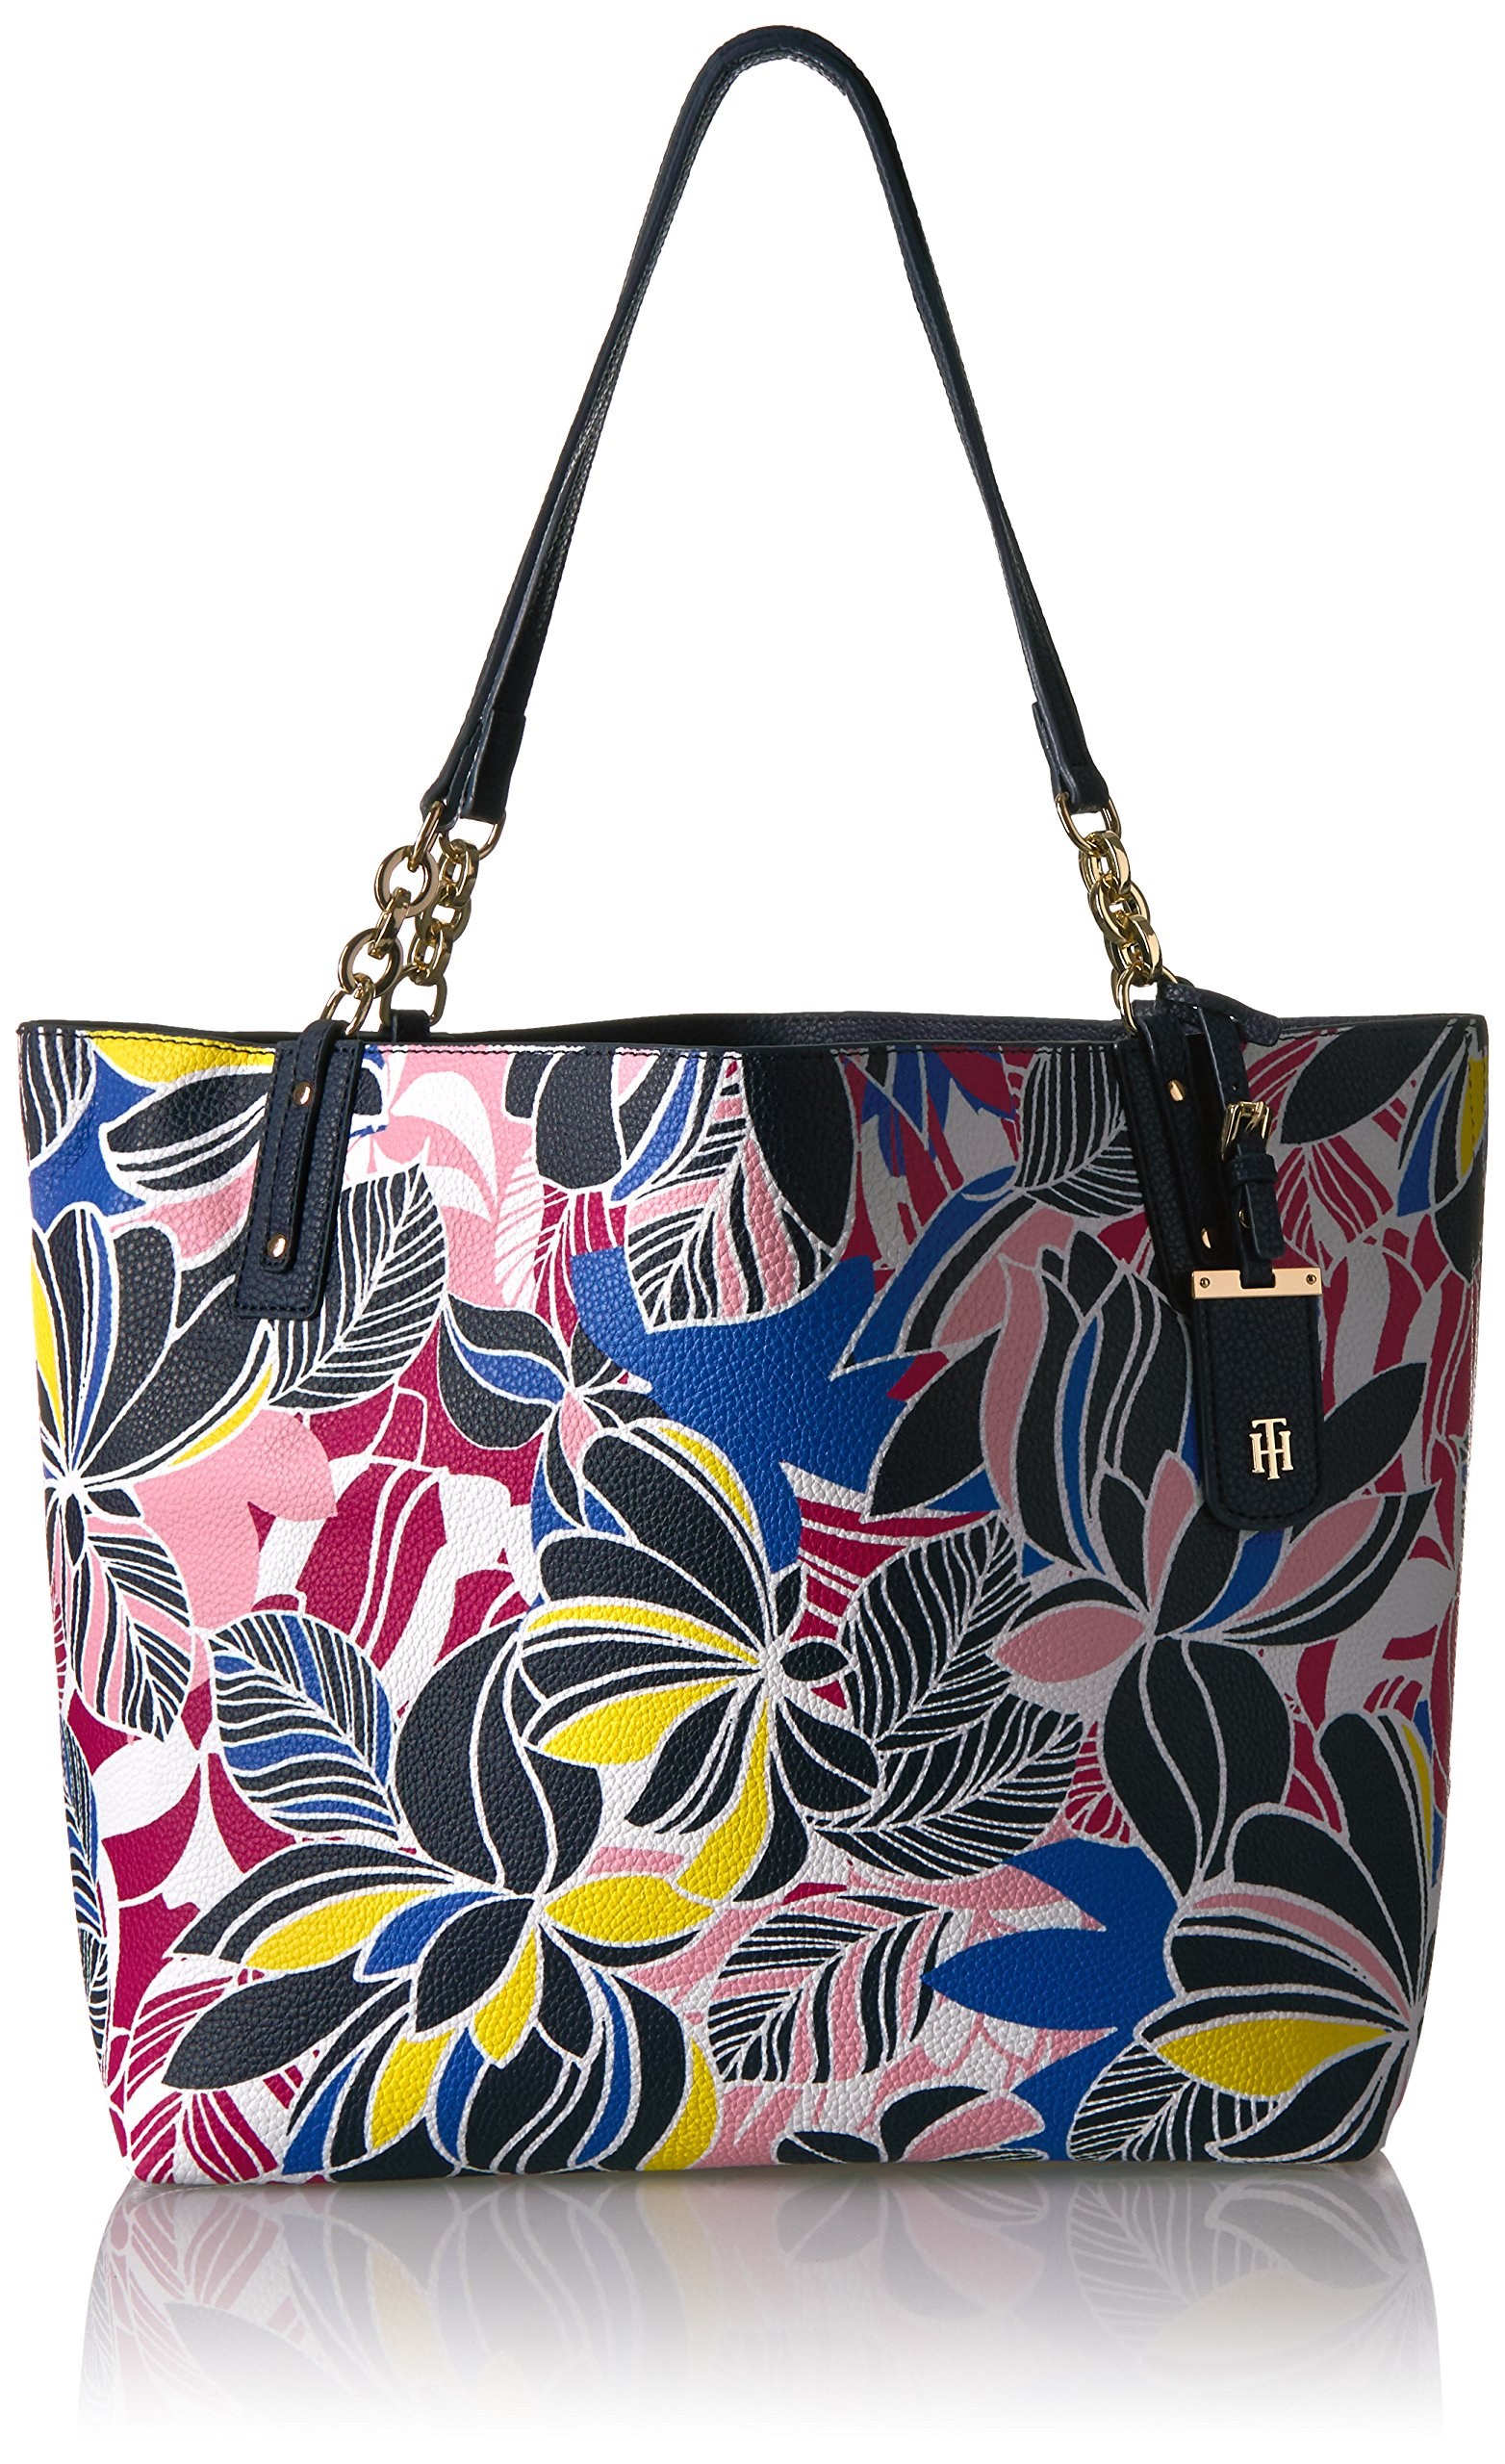 Tommy Hilfiger Travel Tote Bag for Women Gabby, Geranium Floral/Multi